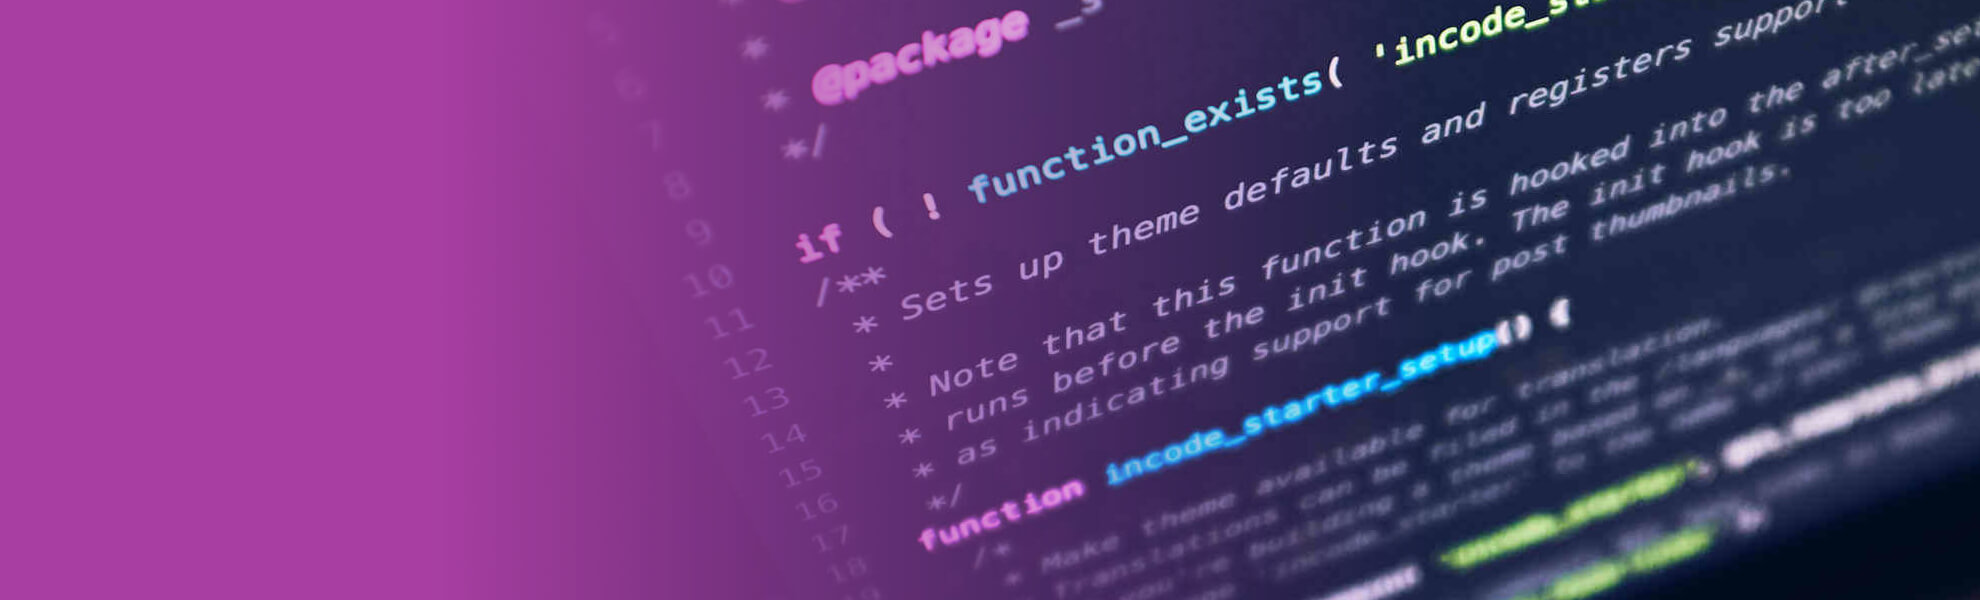 Become a Front End Web + Mobile Developer Over 17 Weeks